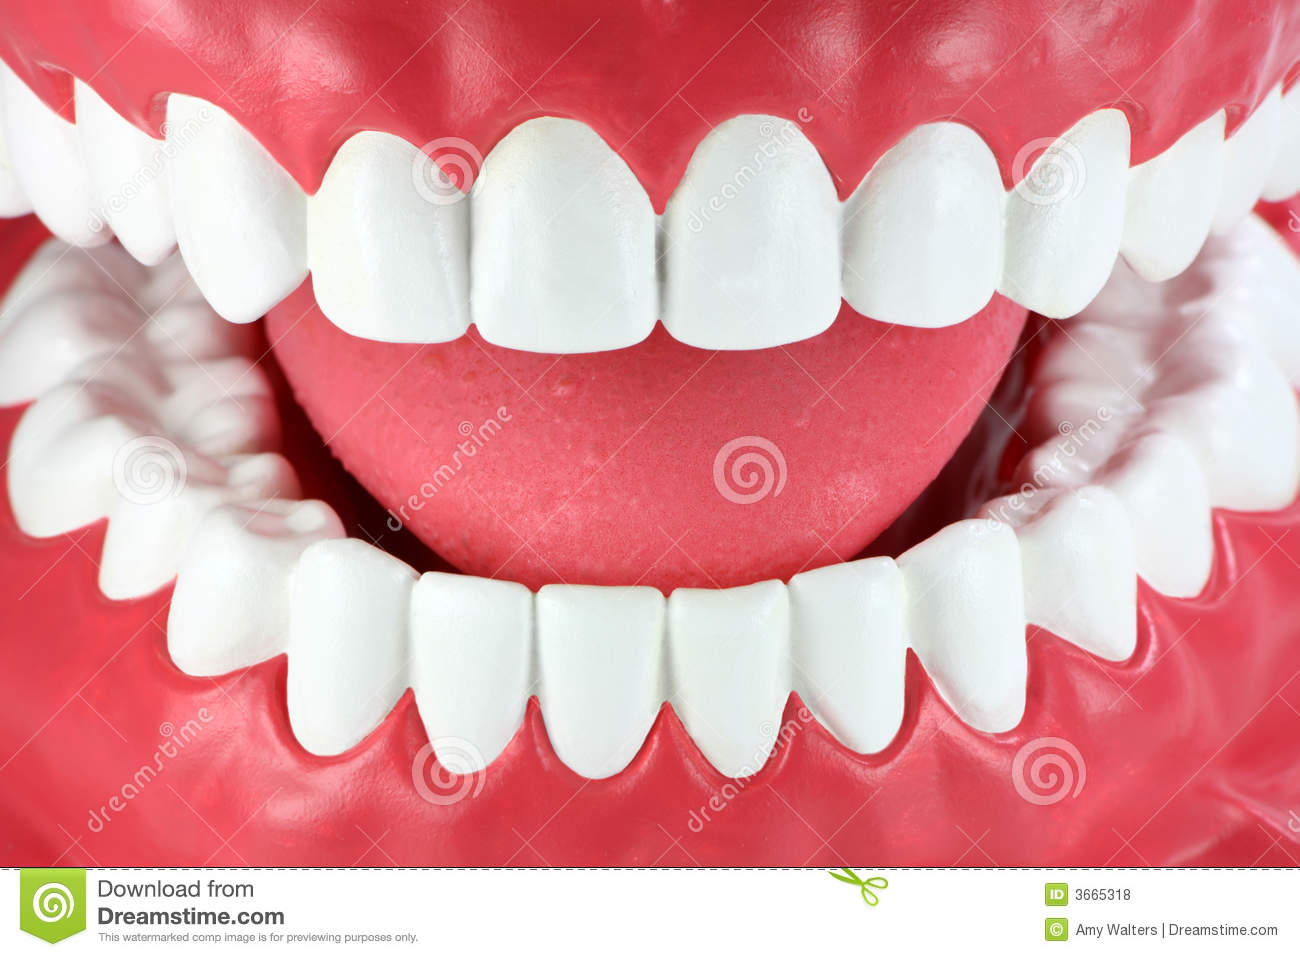 Close-up Of A Mouth With Clean White Teeth Royalty Free Stock Photos ...